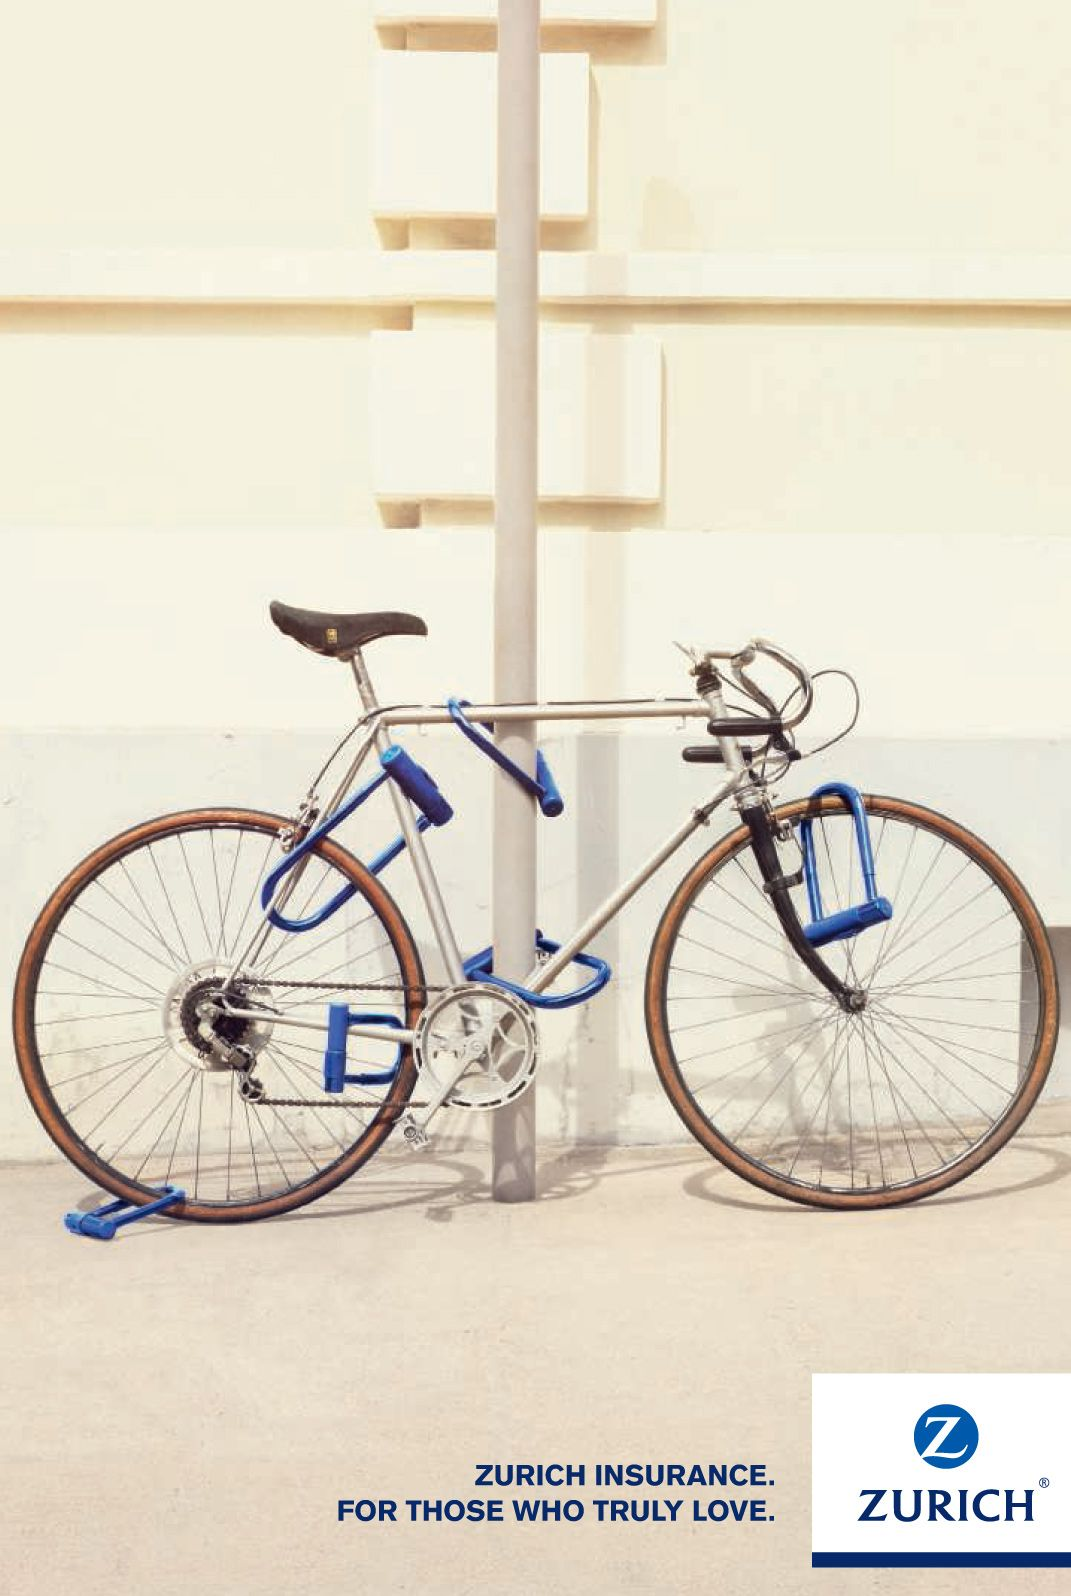 Zurich Insurance Company Bike